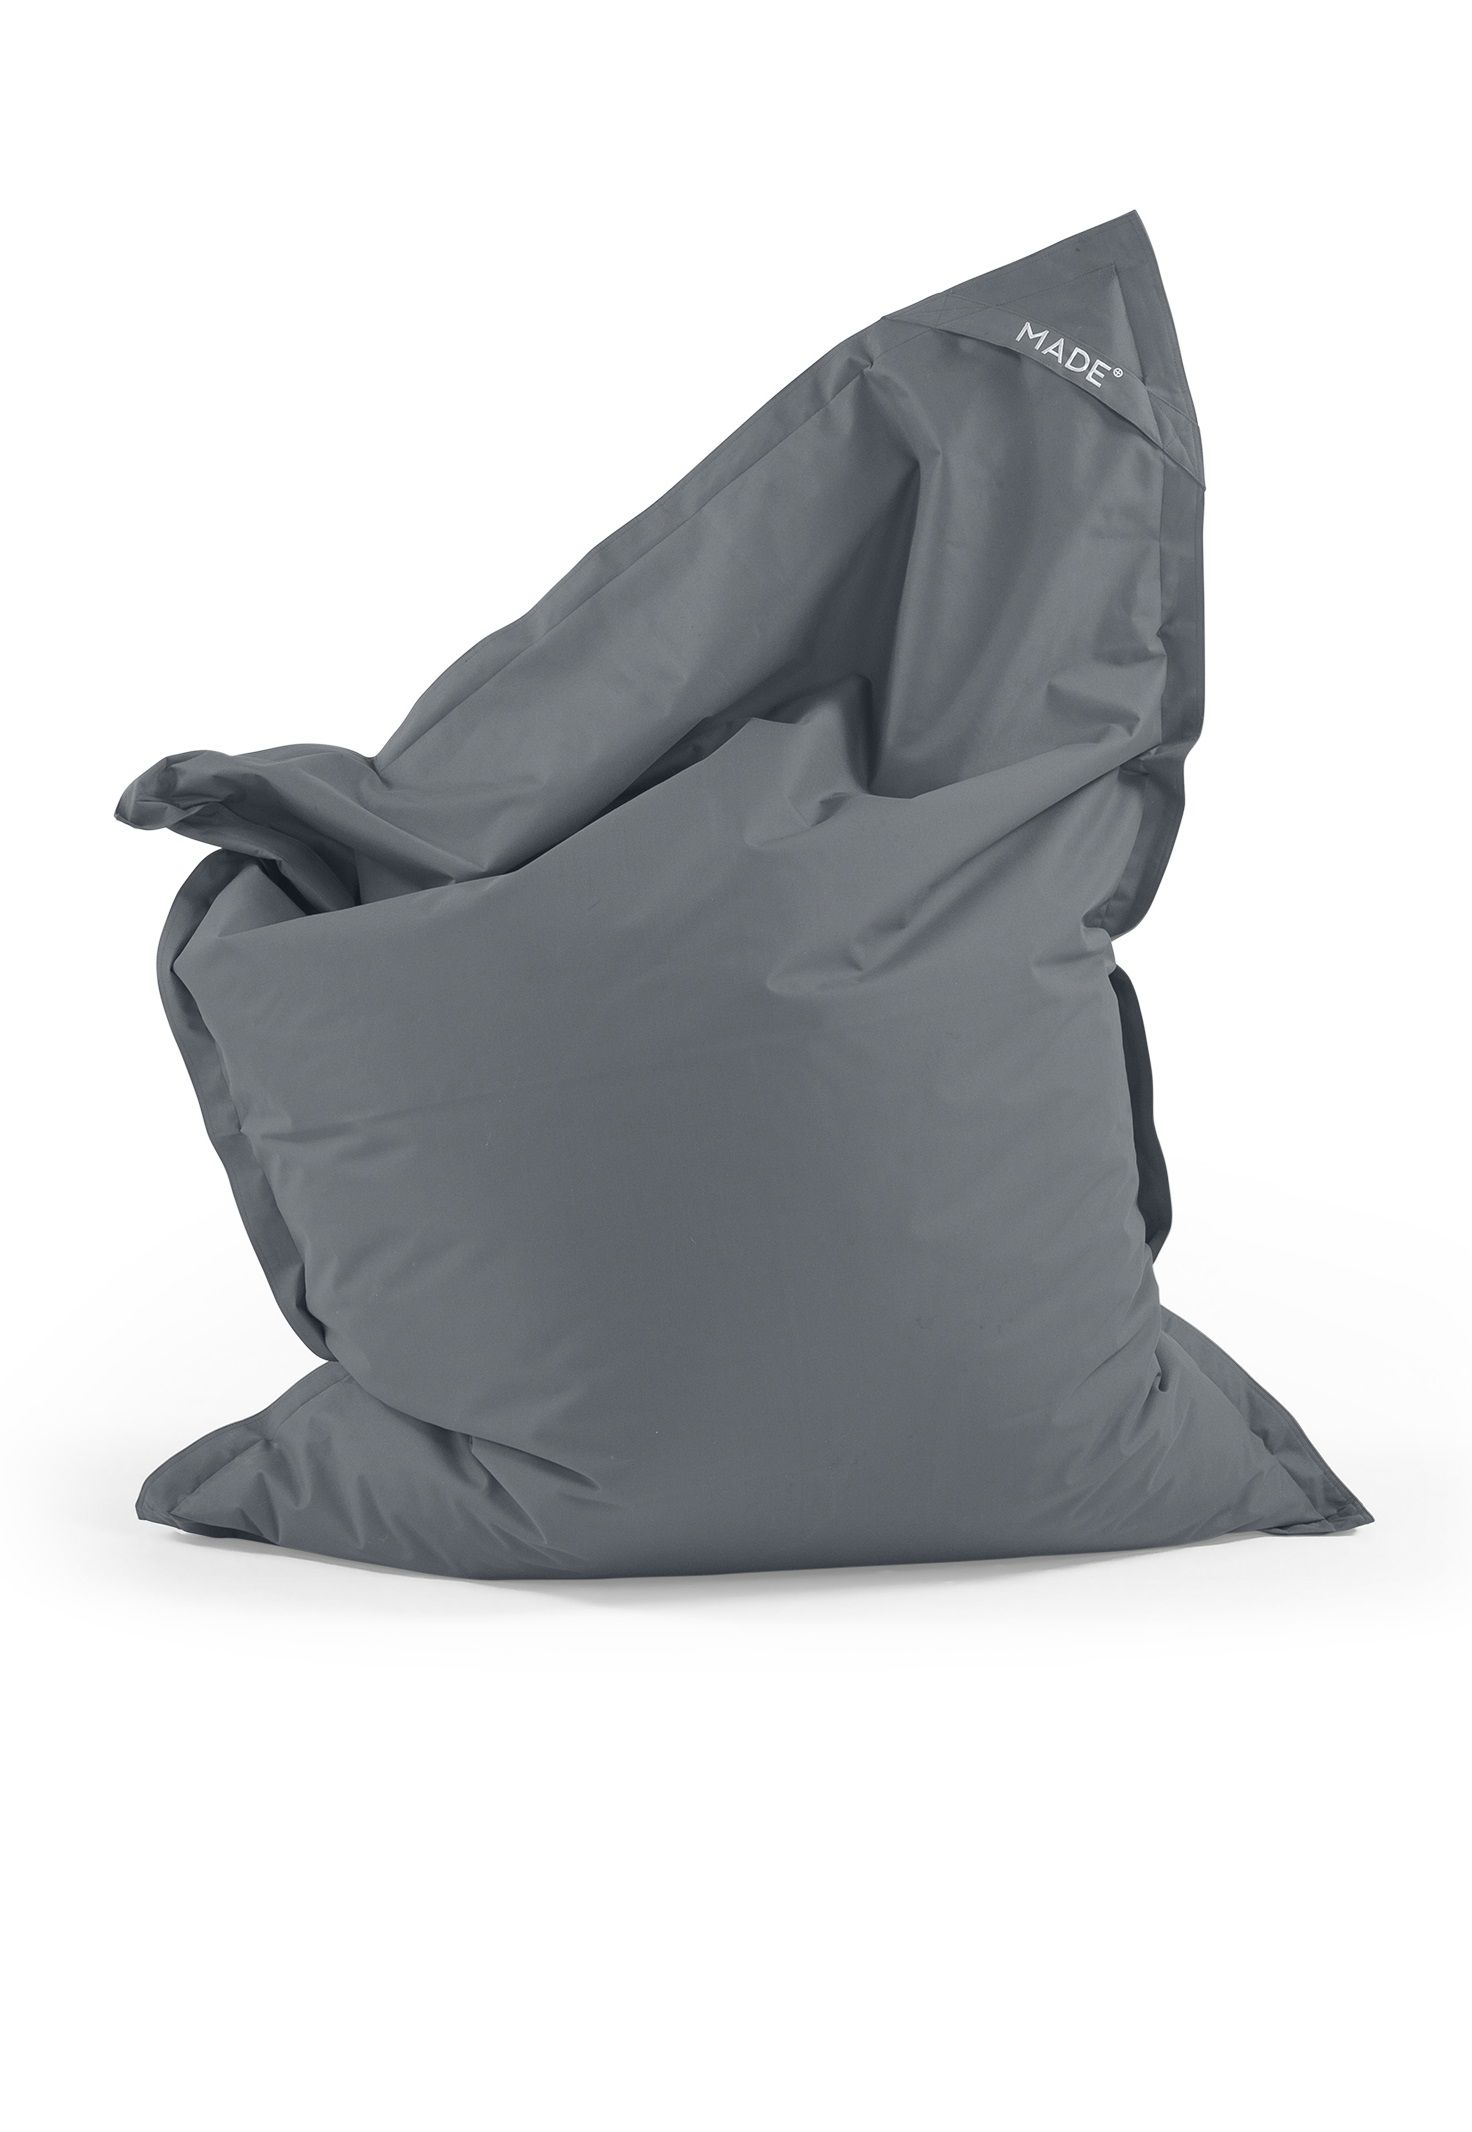 The Piggy Bag, in Grey. Perfect for lounging indoor or out in the garden. £79. MADE.COM